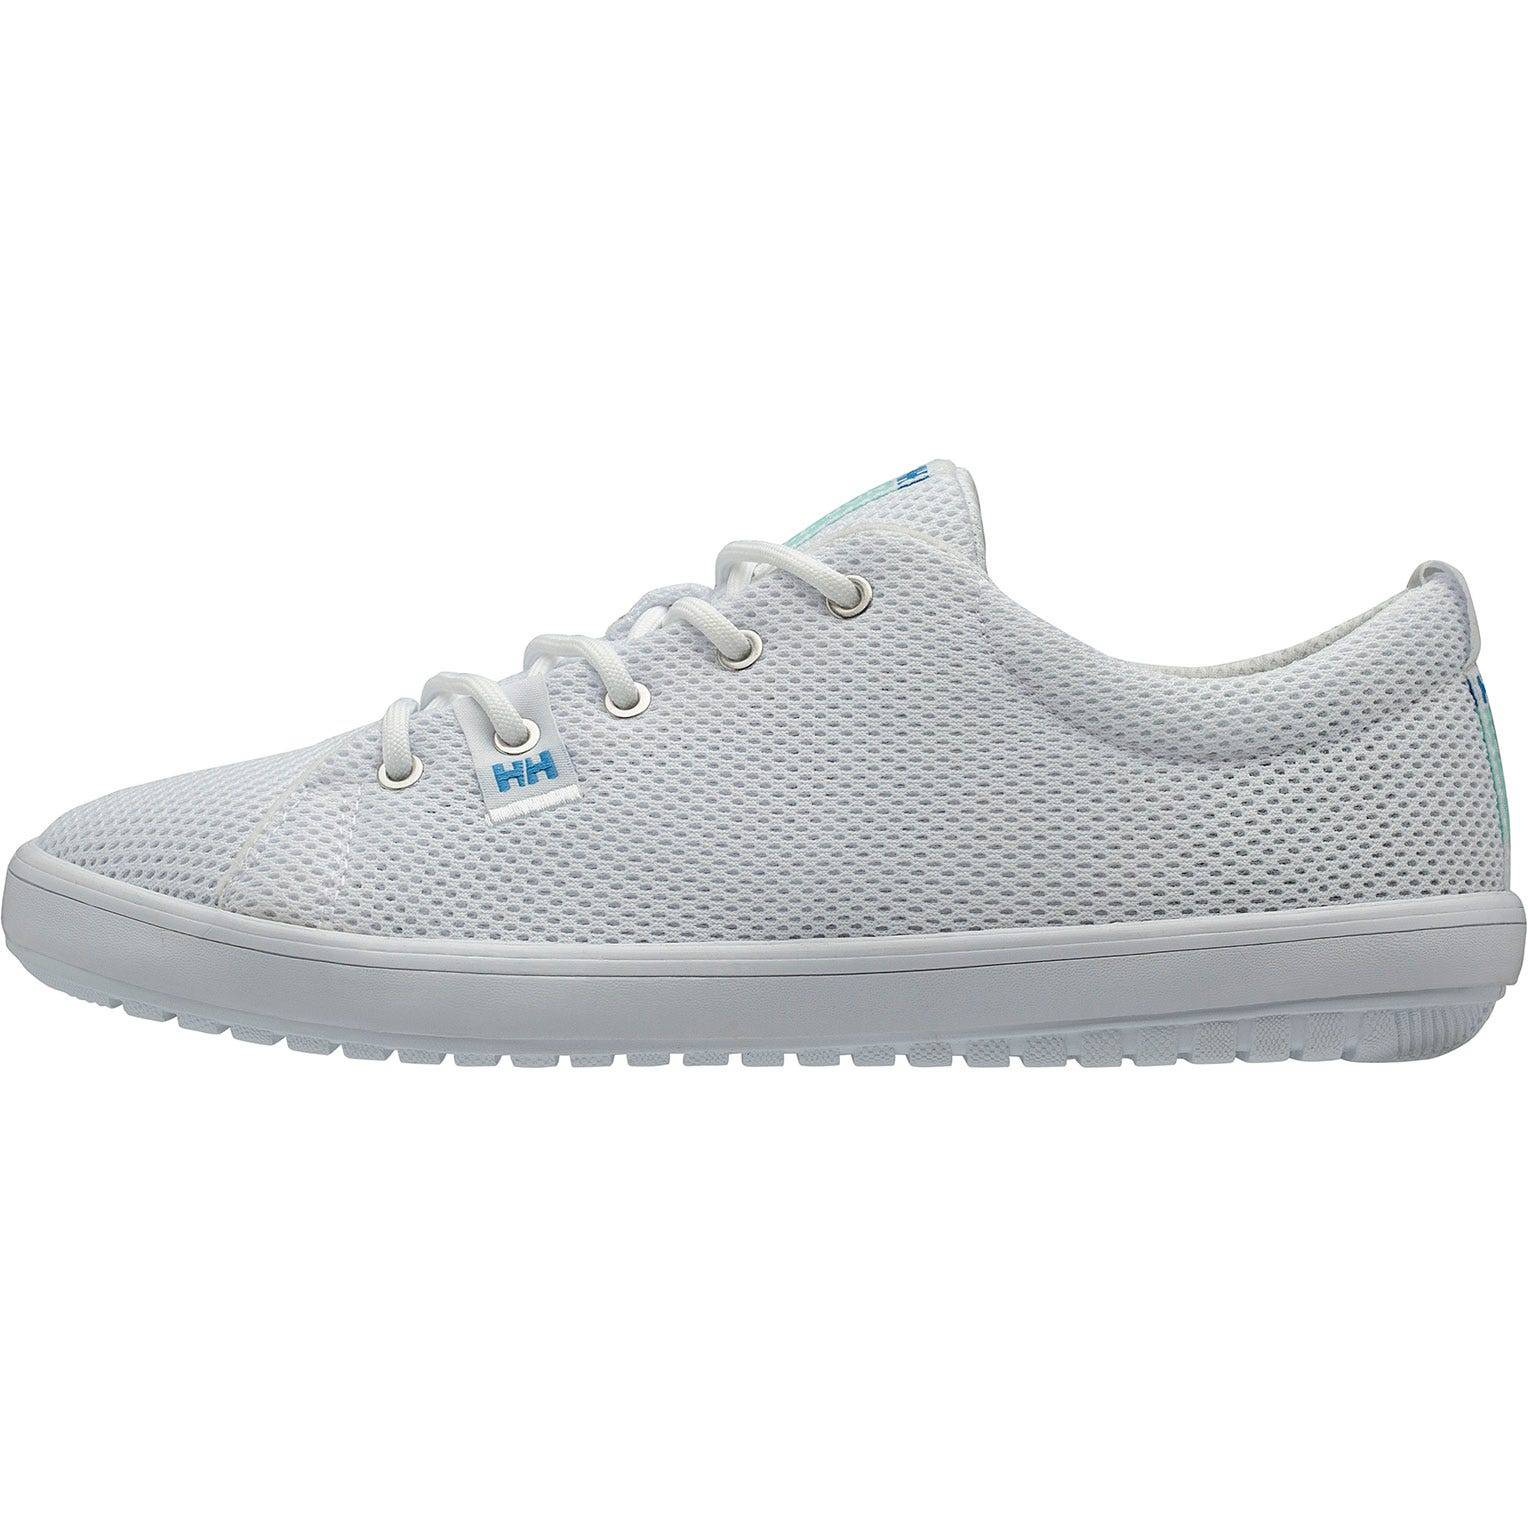 Helly Hansen W Scurry 2 Womens Casual Shoe White 38/7